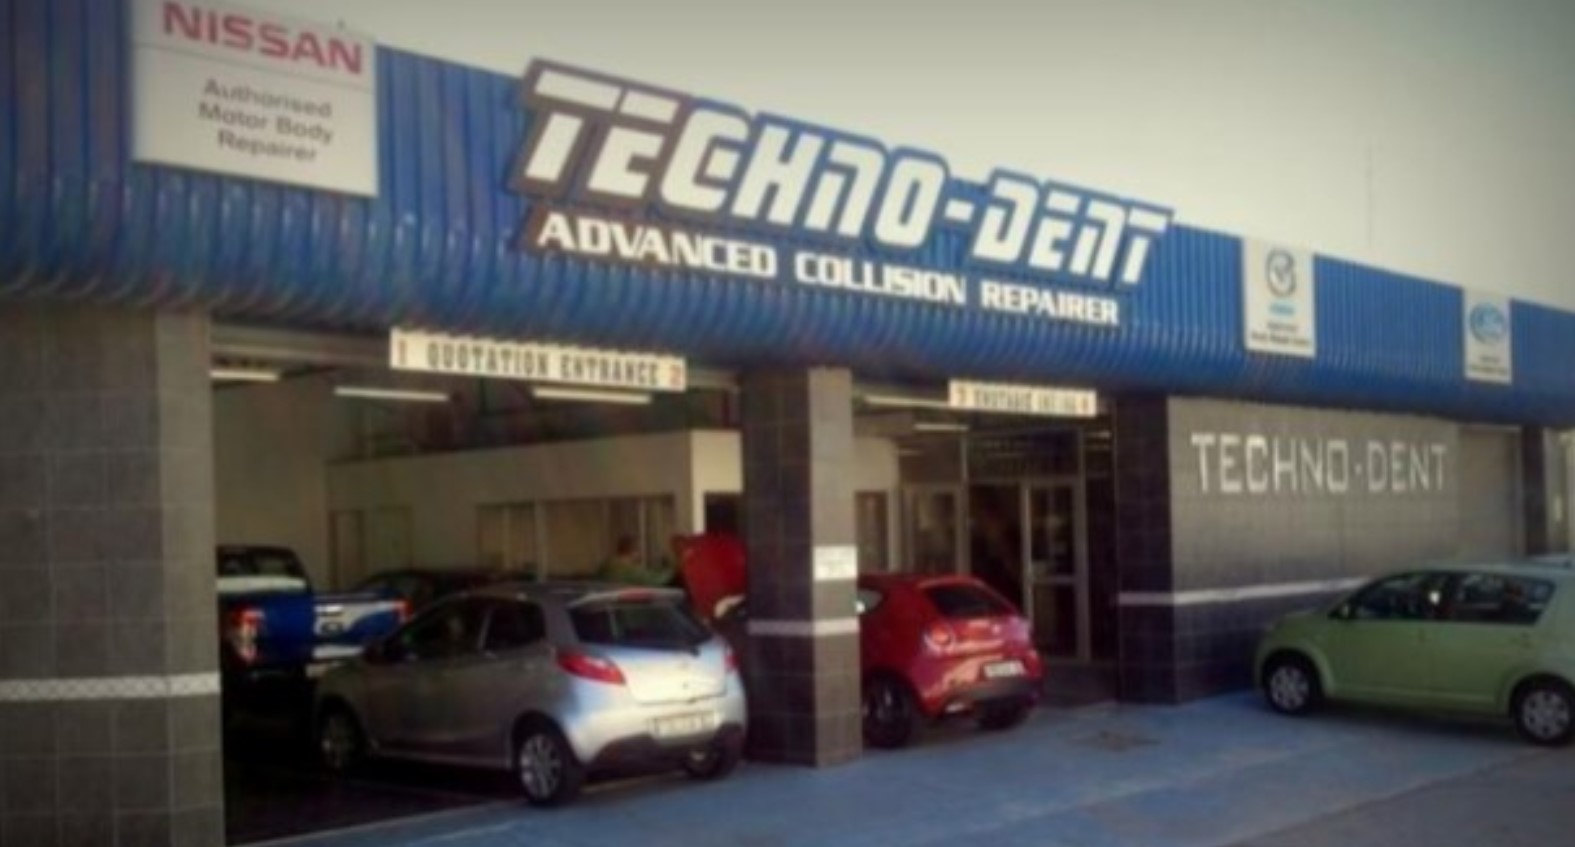 Techno-Dent Advanced Collision Repairer